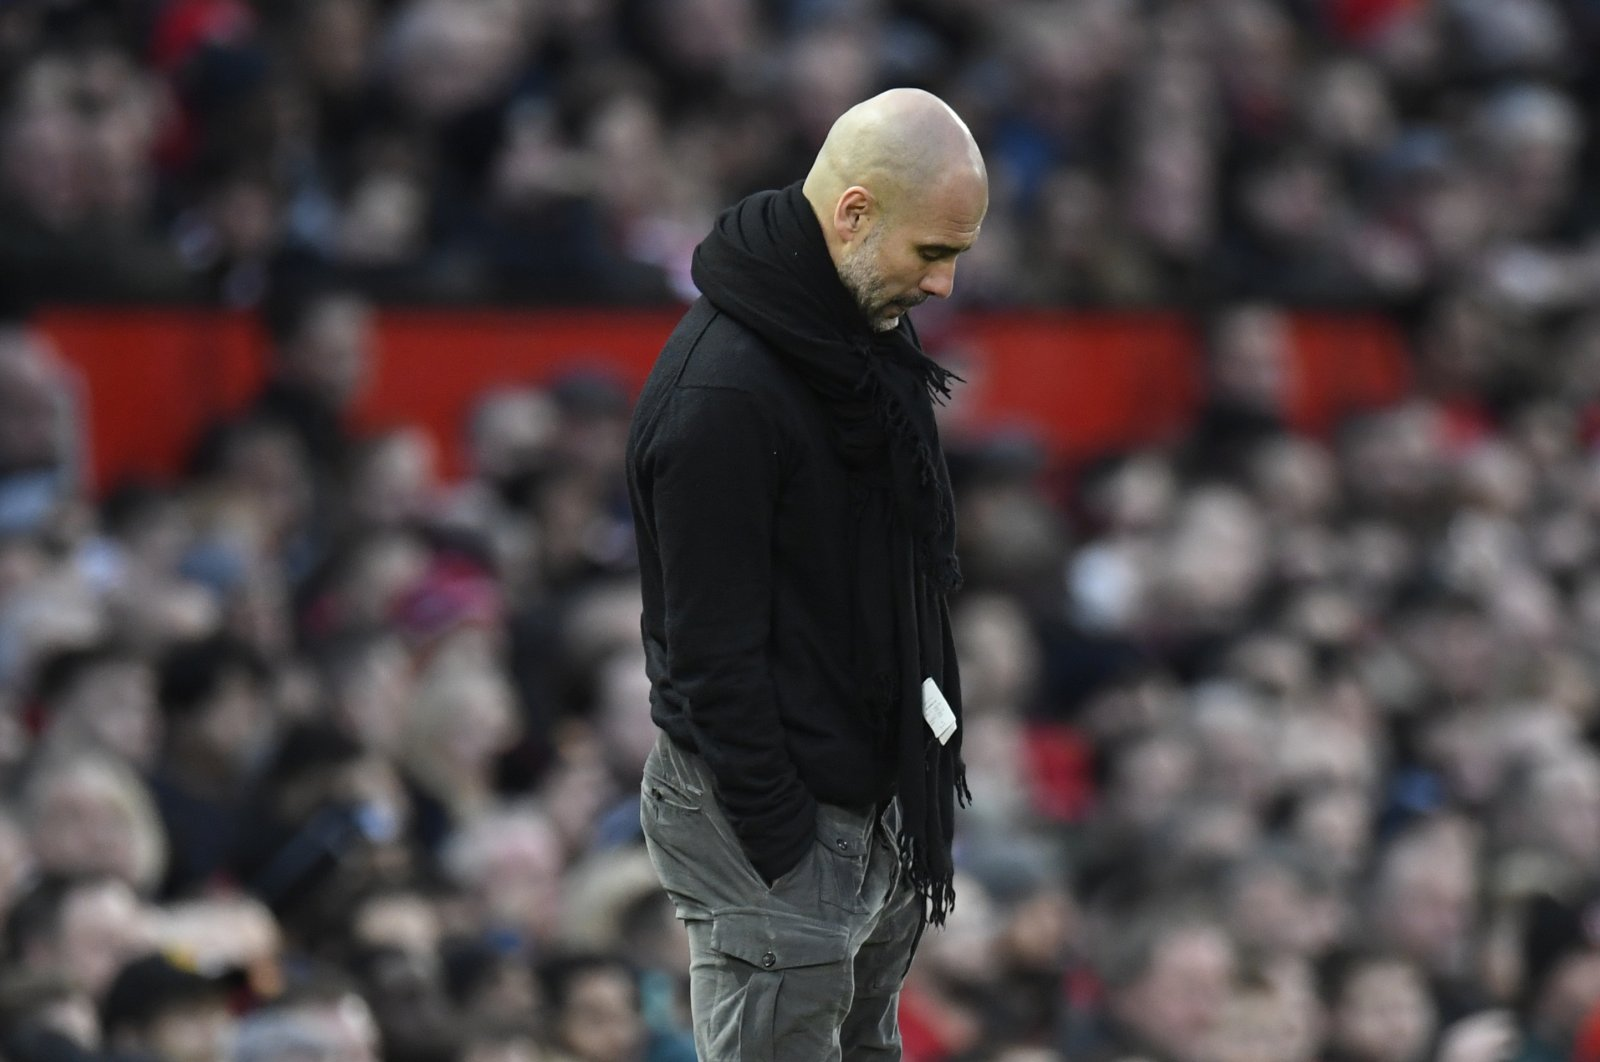 Pep Guardiola reacts during an English Premier League match, in Manchester, Britain, M between Manchester United and Manchester City held at Old Trafford in Manchester, Britain, Sunday, March 8, 2020. (EPA Photo)